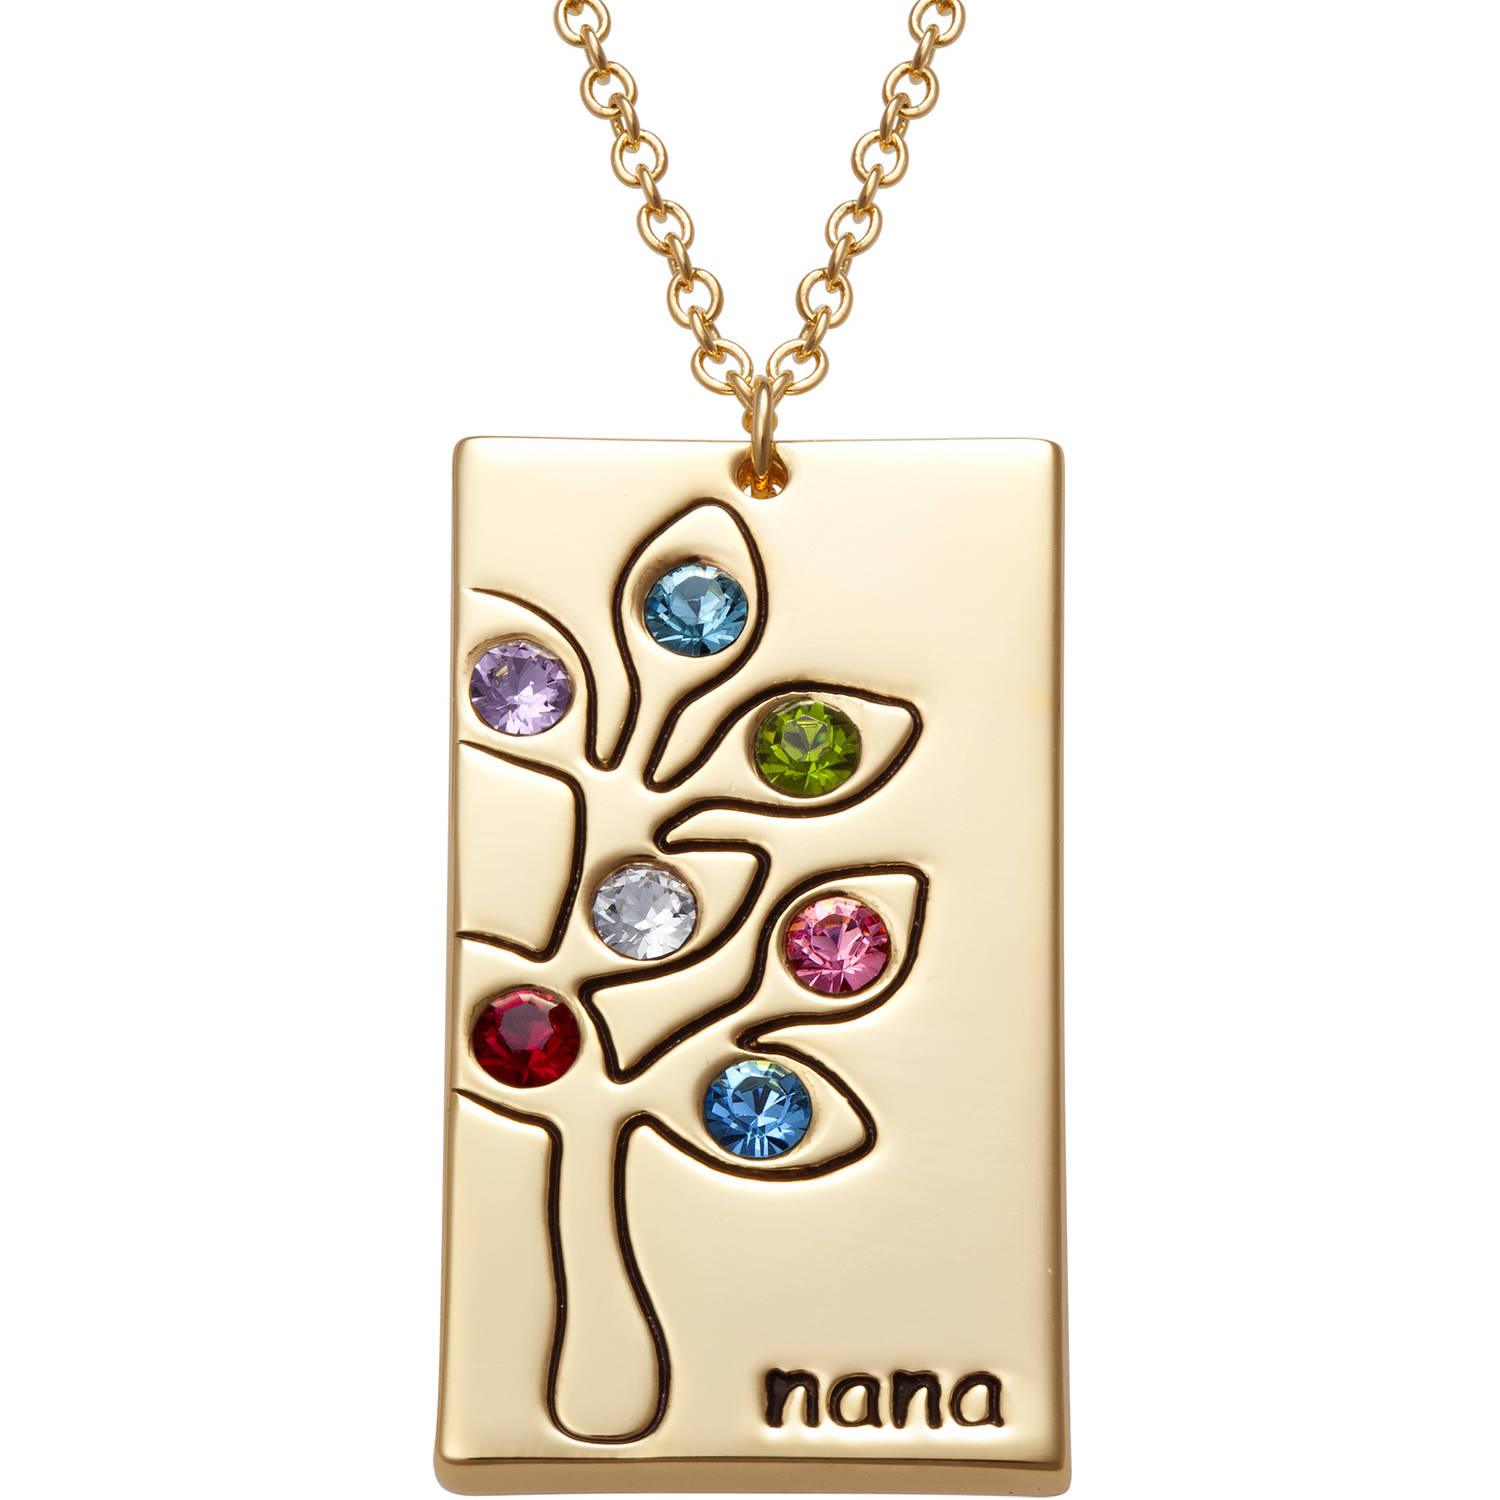 com sister the jewelry to we family pendant nuts couple amazon of tree necklace from gift will for always a dp be cj m